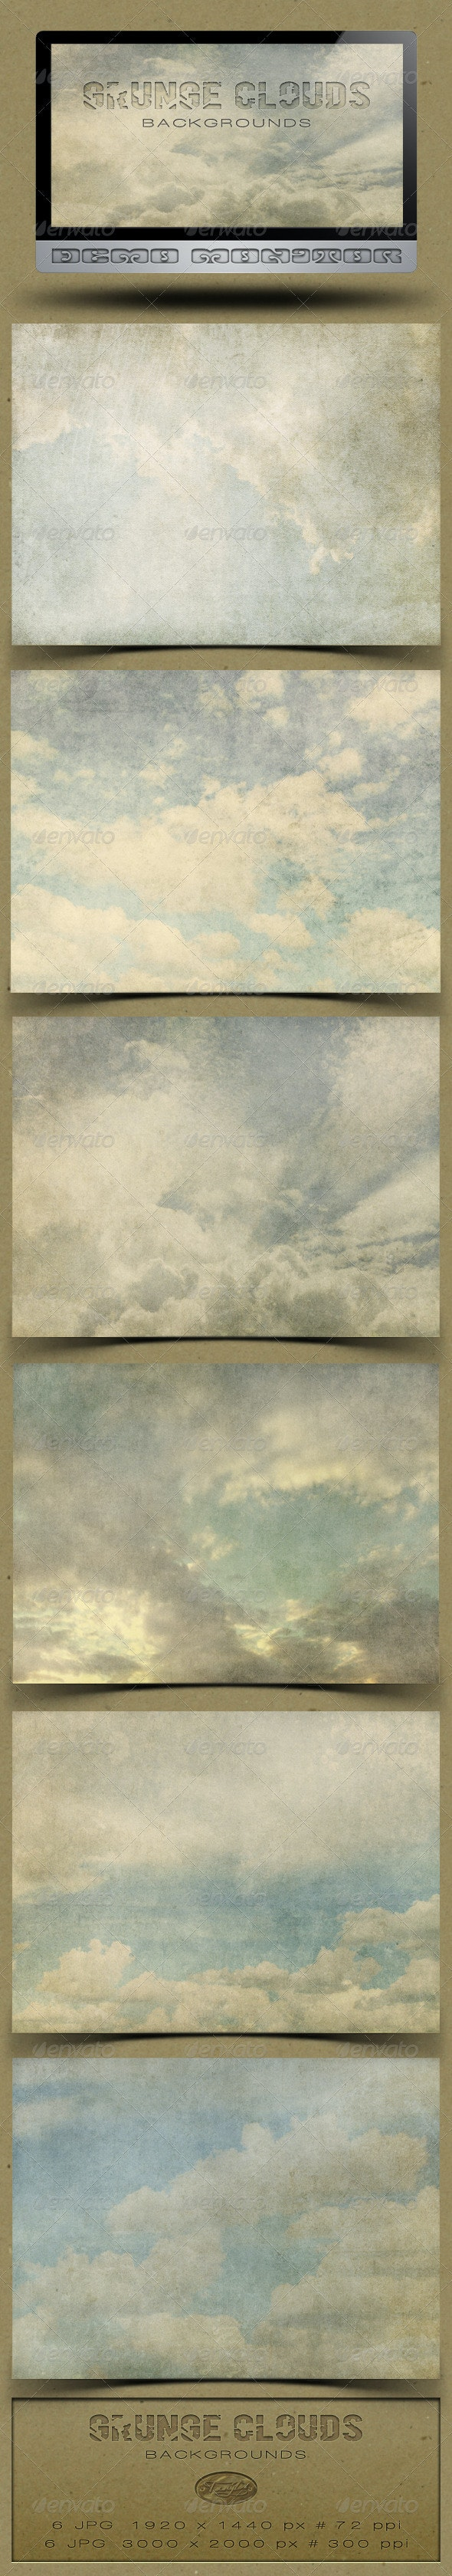 6 Grunge Clouds Backgrounds - Nature Backgrounds